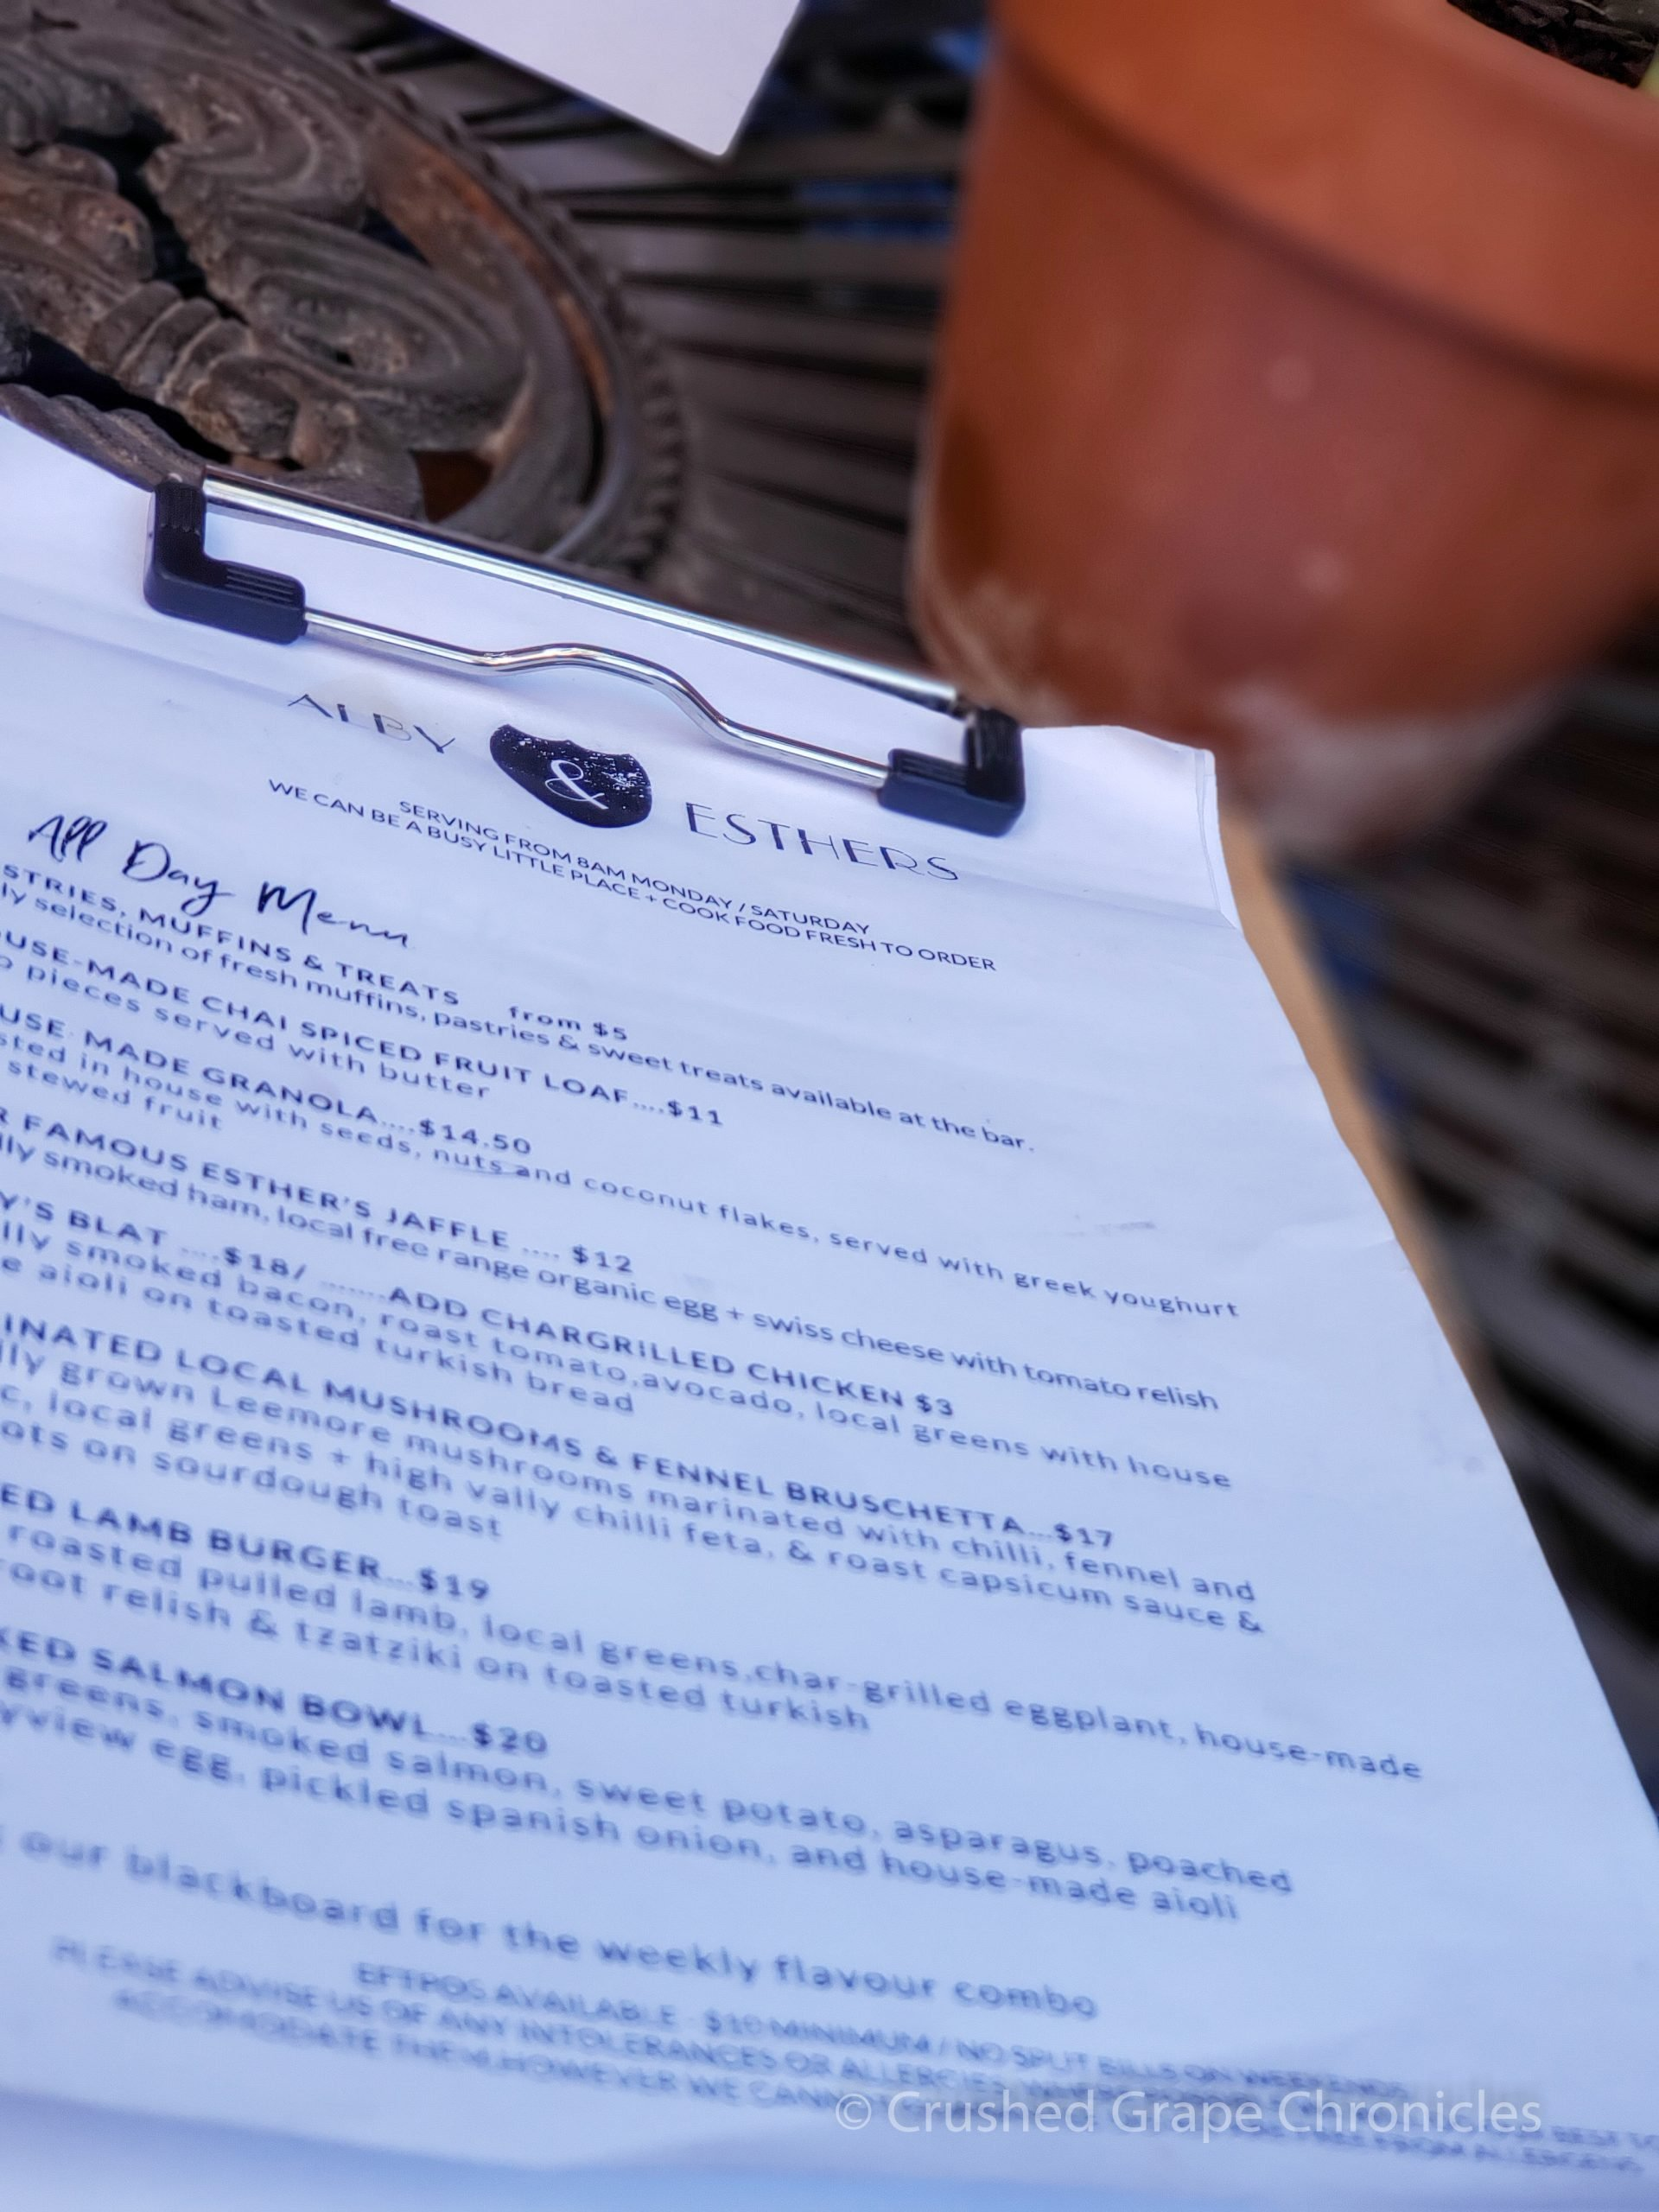 The breakfast menu at Alby + Esthers